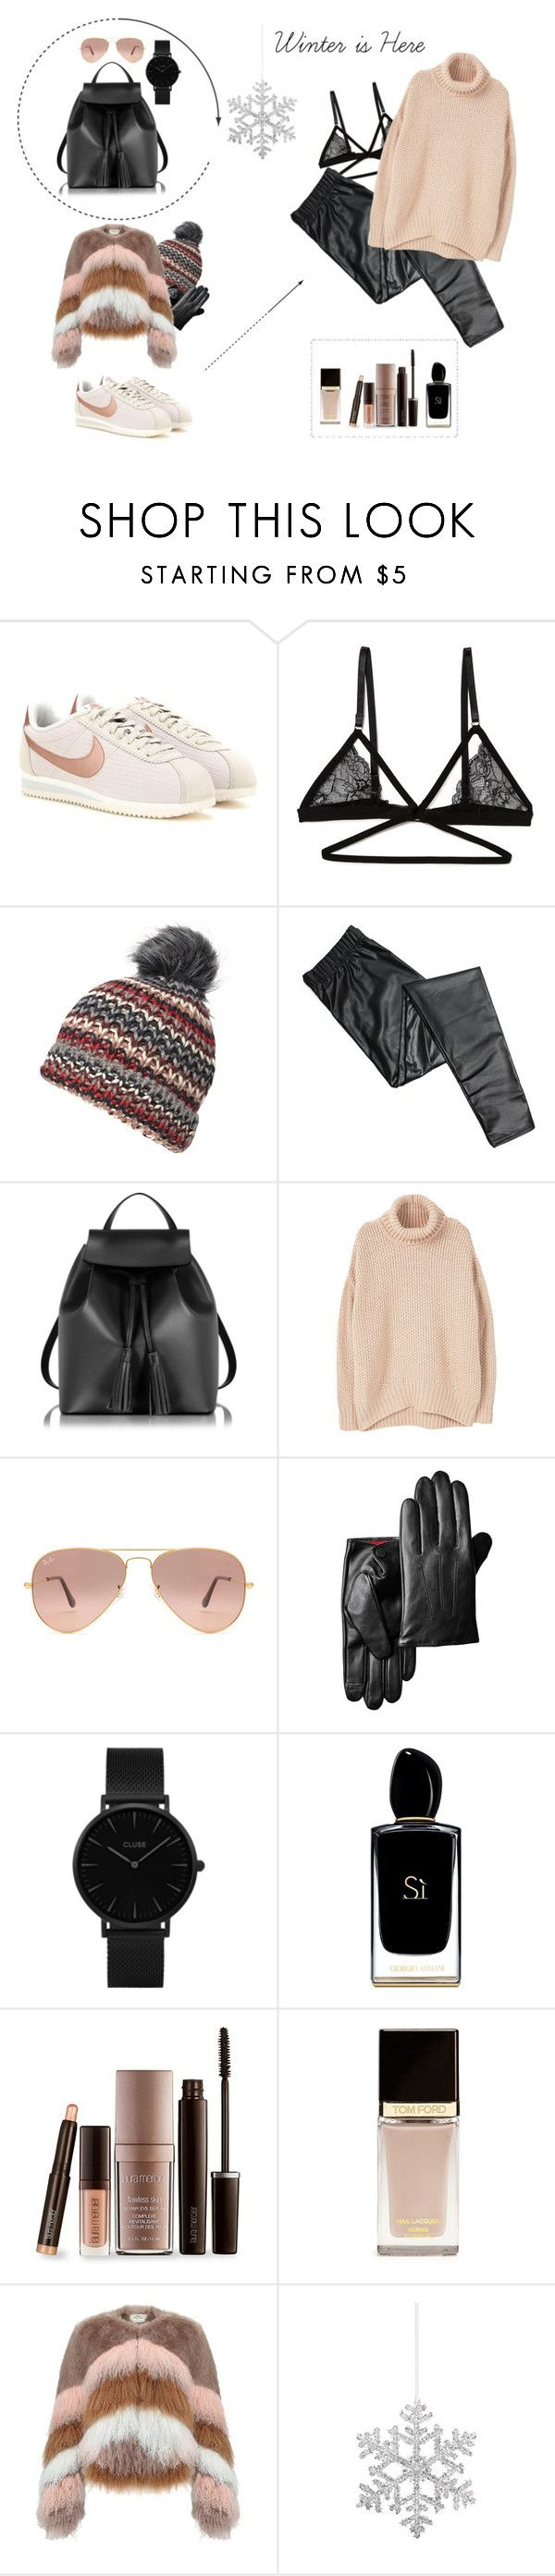 """""""Winter is Here"""" by smaranda-leorda on Polyvore featuring NIKE, Honeydew Intimates, Dorothy Perkins, Le Parmentier, MANGO, Ray-Ban, CLUSE, Giorgio Armani, Laura Mercier and Tom Ford"""